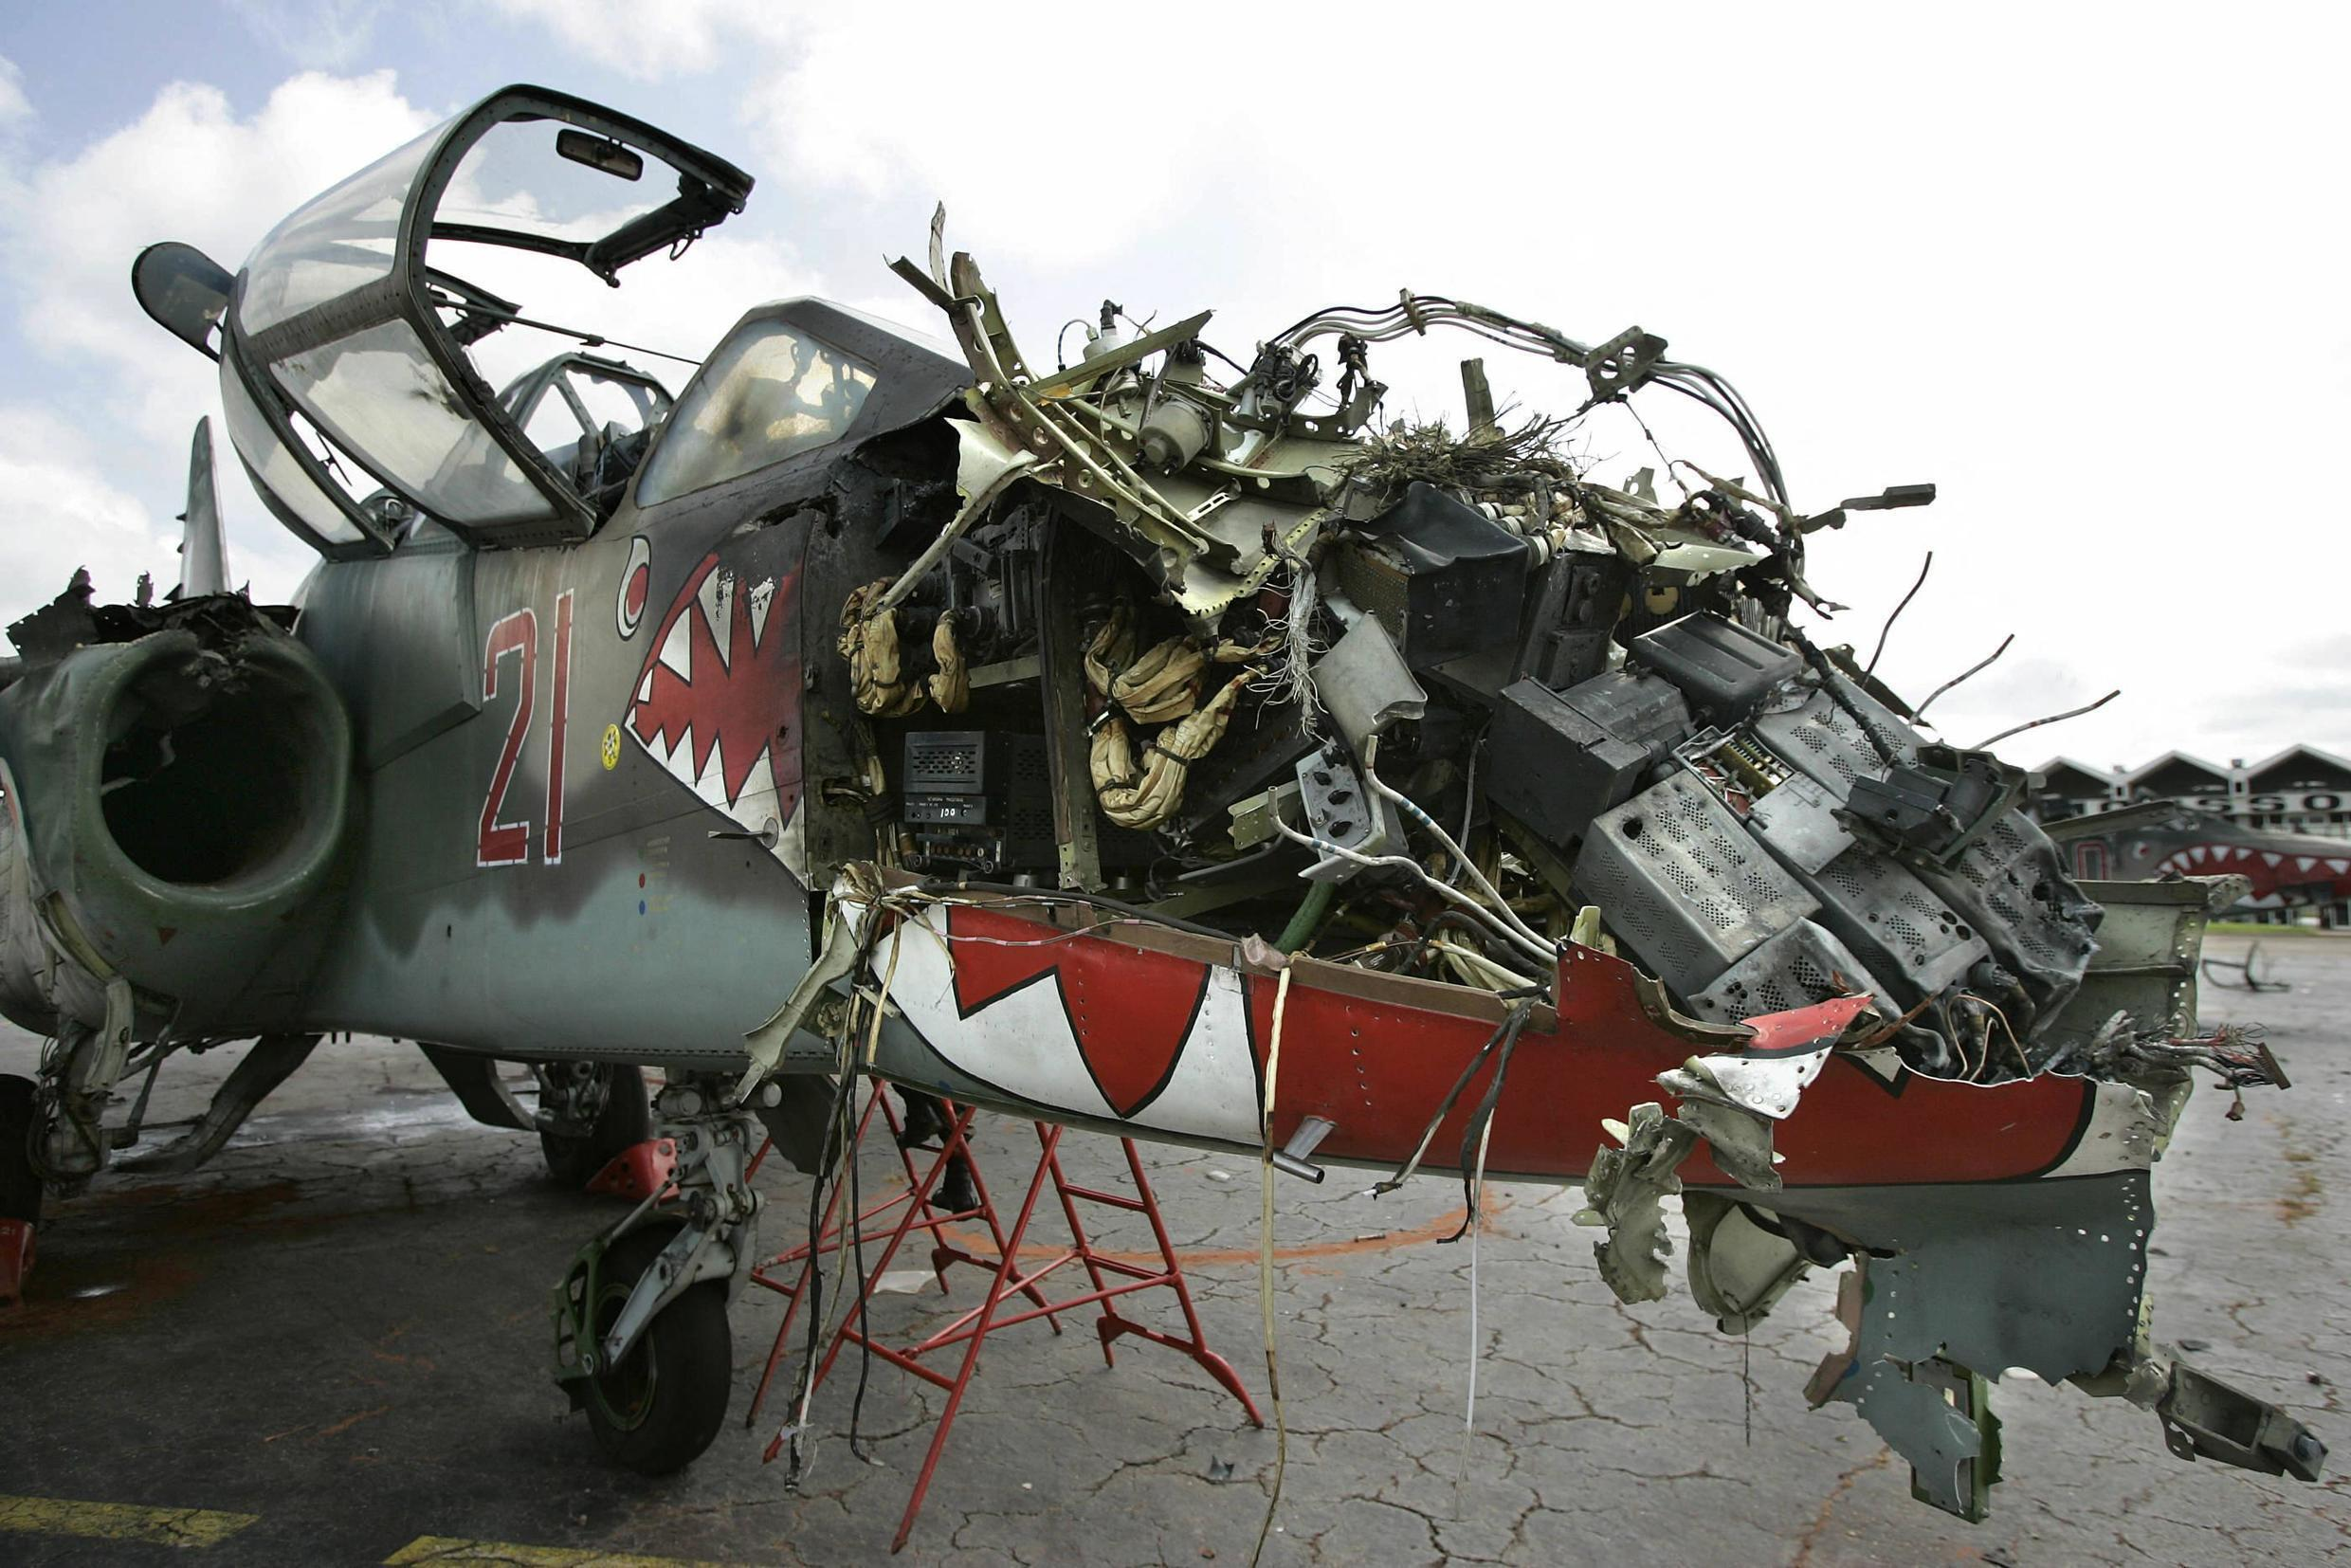 A Russian-made Sukhoi-25 jet after it was hit by a retaliatory French strike in the wake of the Bouaké bombing.